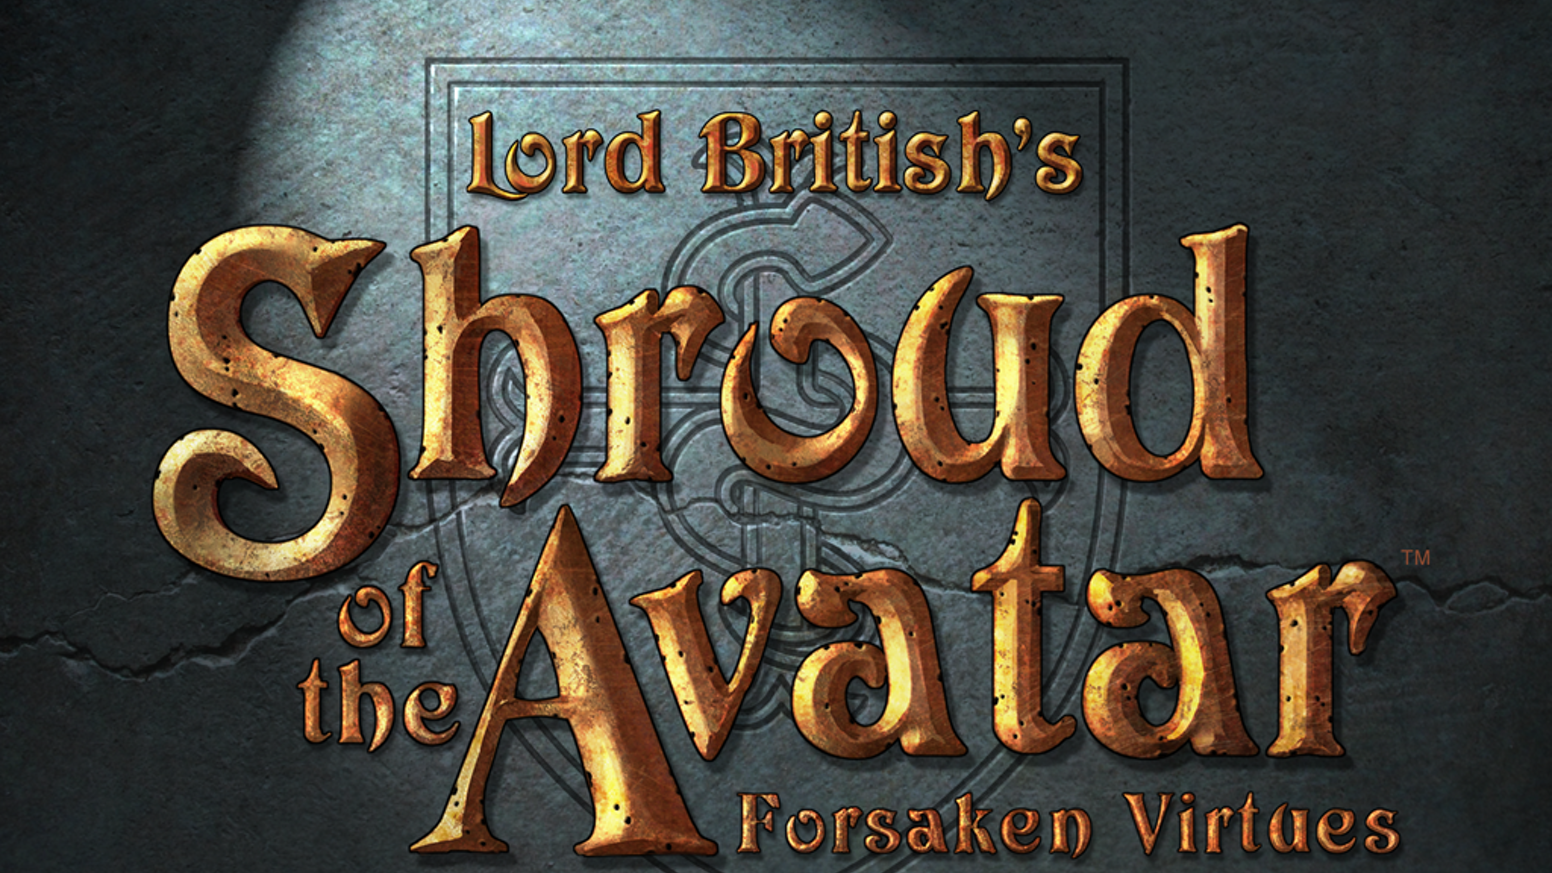 Lord British returns to his fantasy RPG roots with Shroud of the Avatar, hearkening back to his innovative early work.